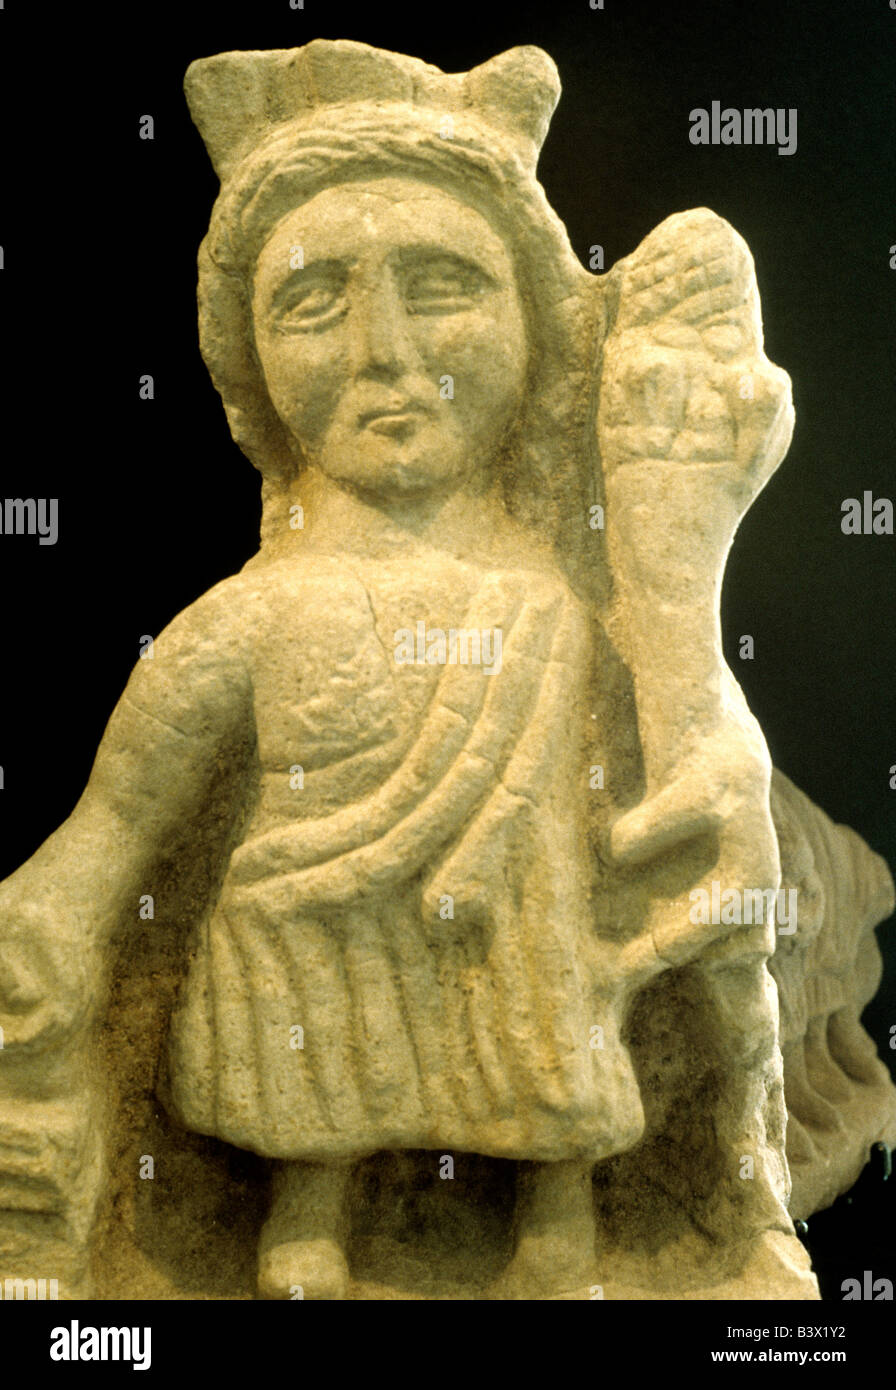 Roman carved stone sculpture figure from Hadrians Wall Tulie House Museum Carlisle Cumbria England UK English history - Stock Image